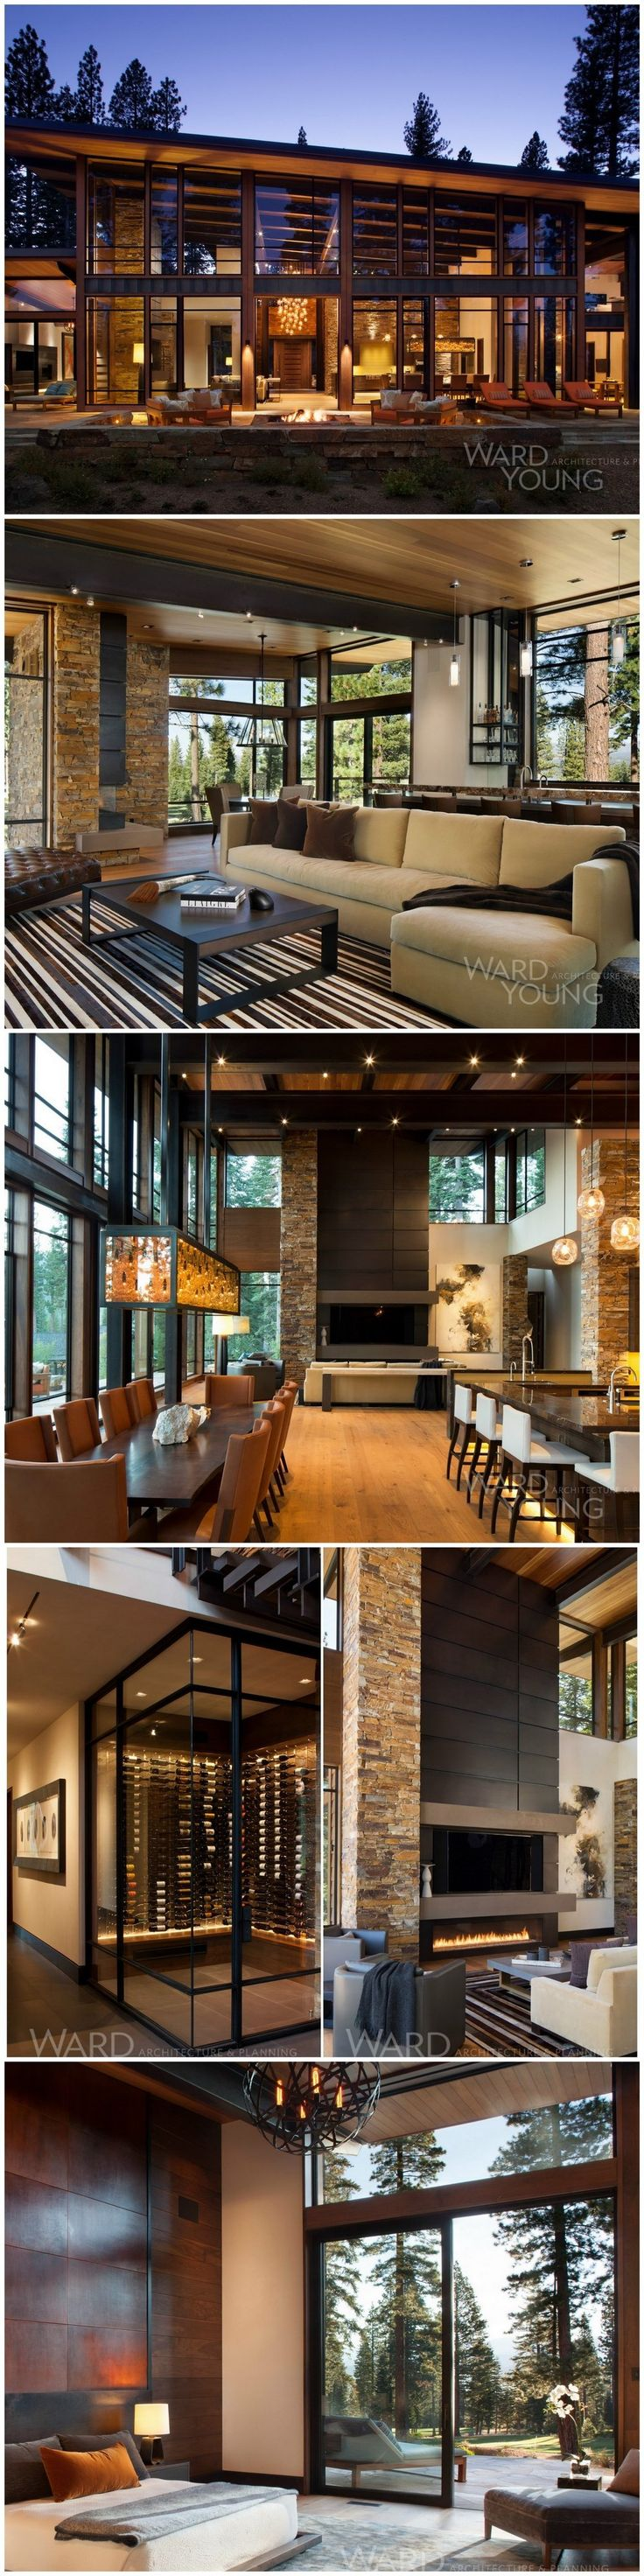 martis modern mountain home by ward young architecture - Mountain Cabin Plans